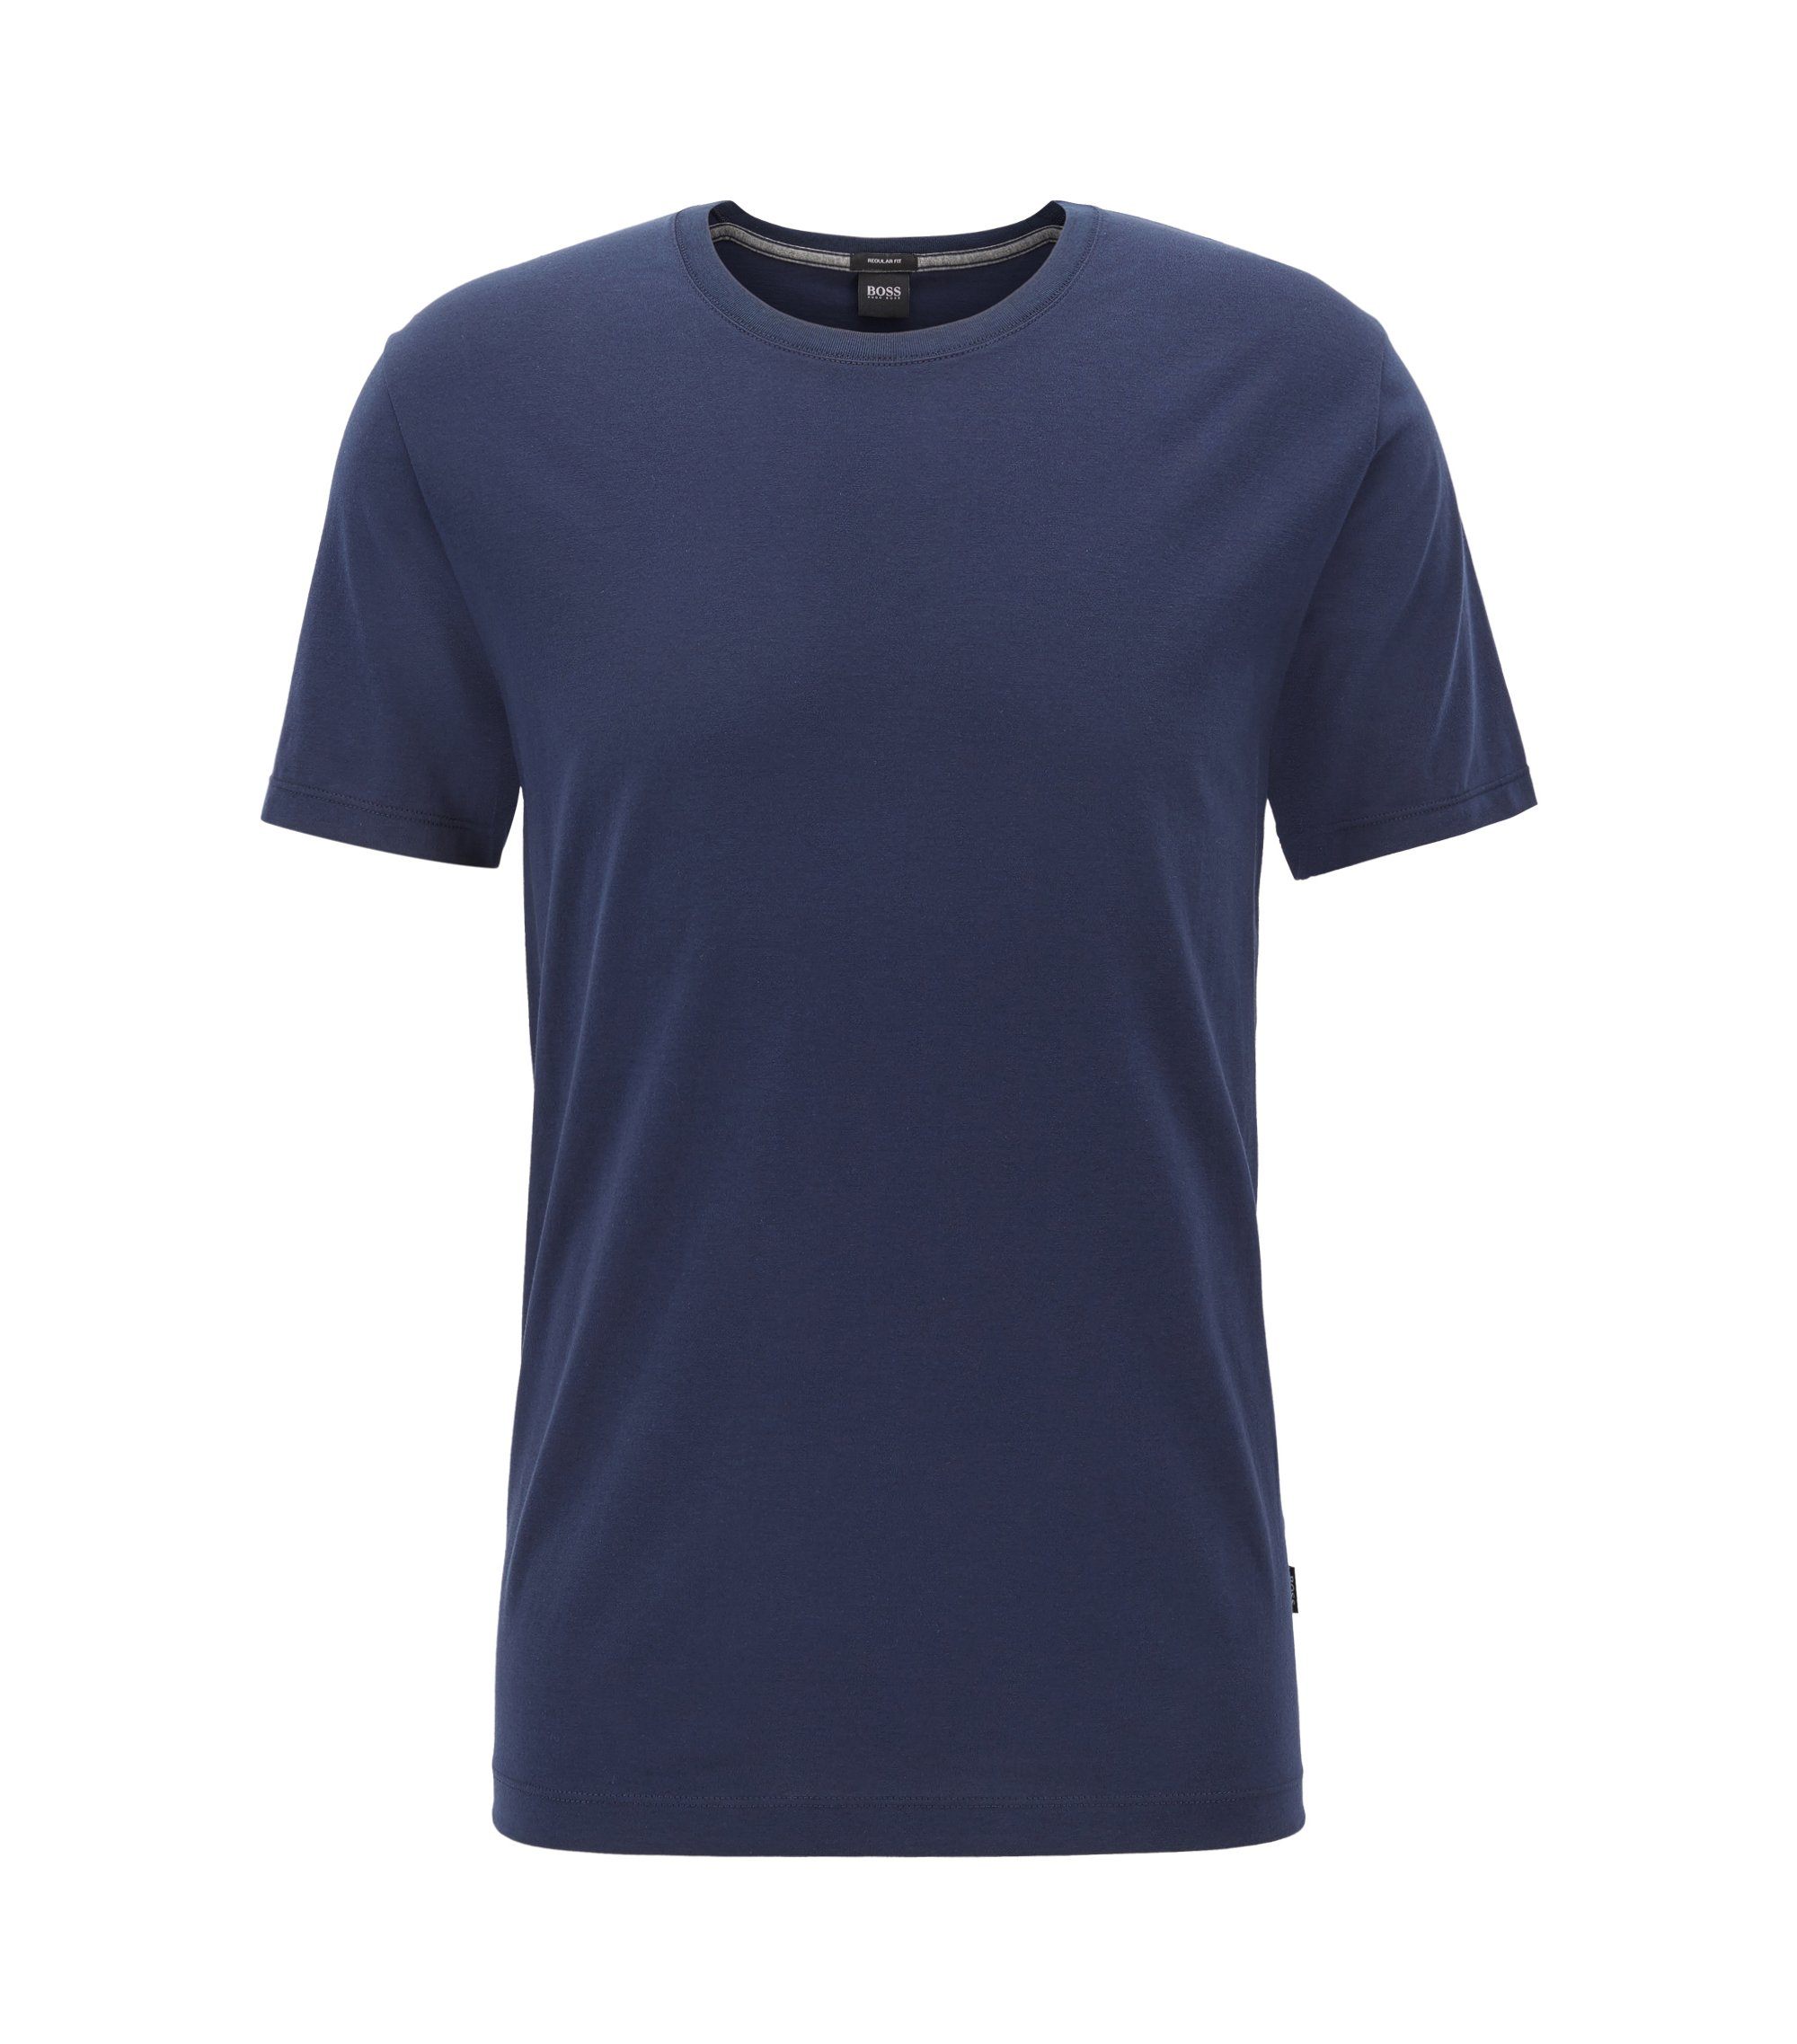 Cotton T-Shirt | Tiburt, Dark Blue